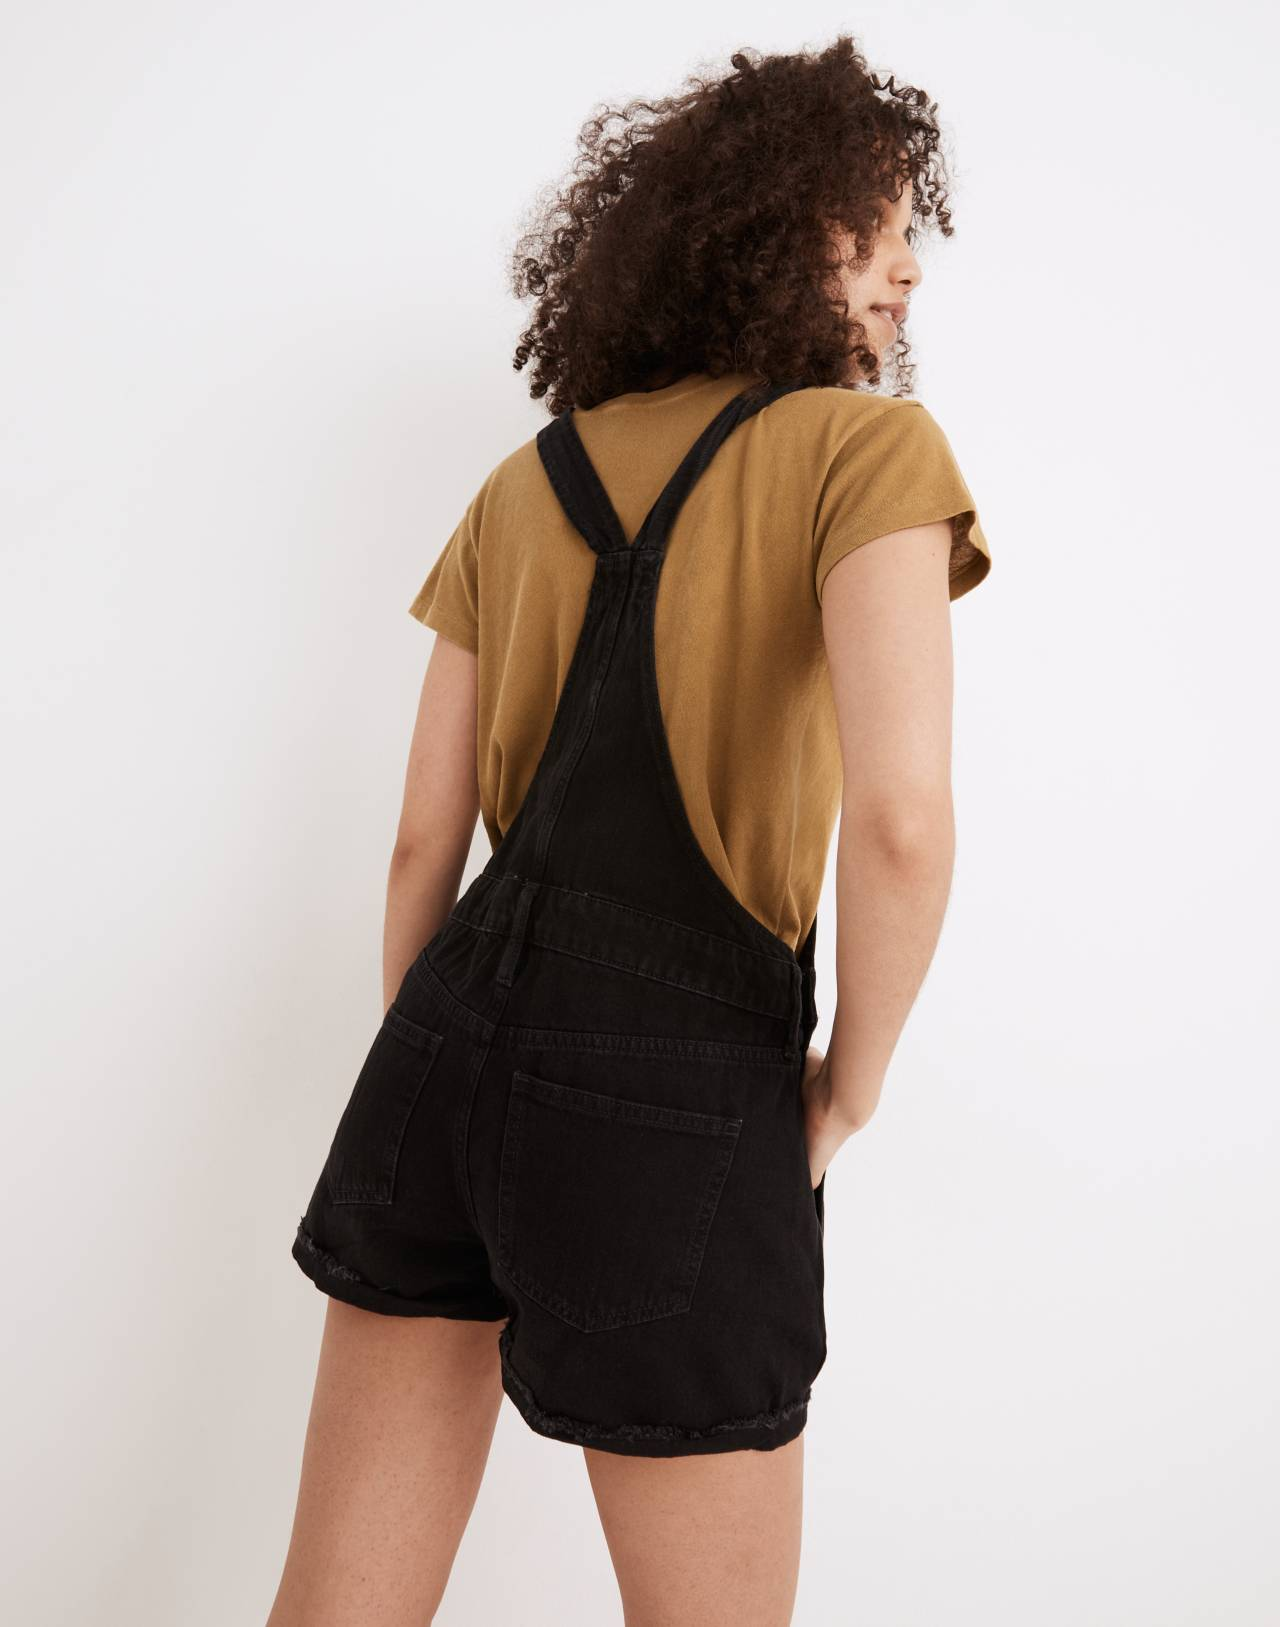 Adirondack Short Overalls in Washed Black in washed black image 3